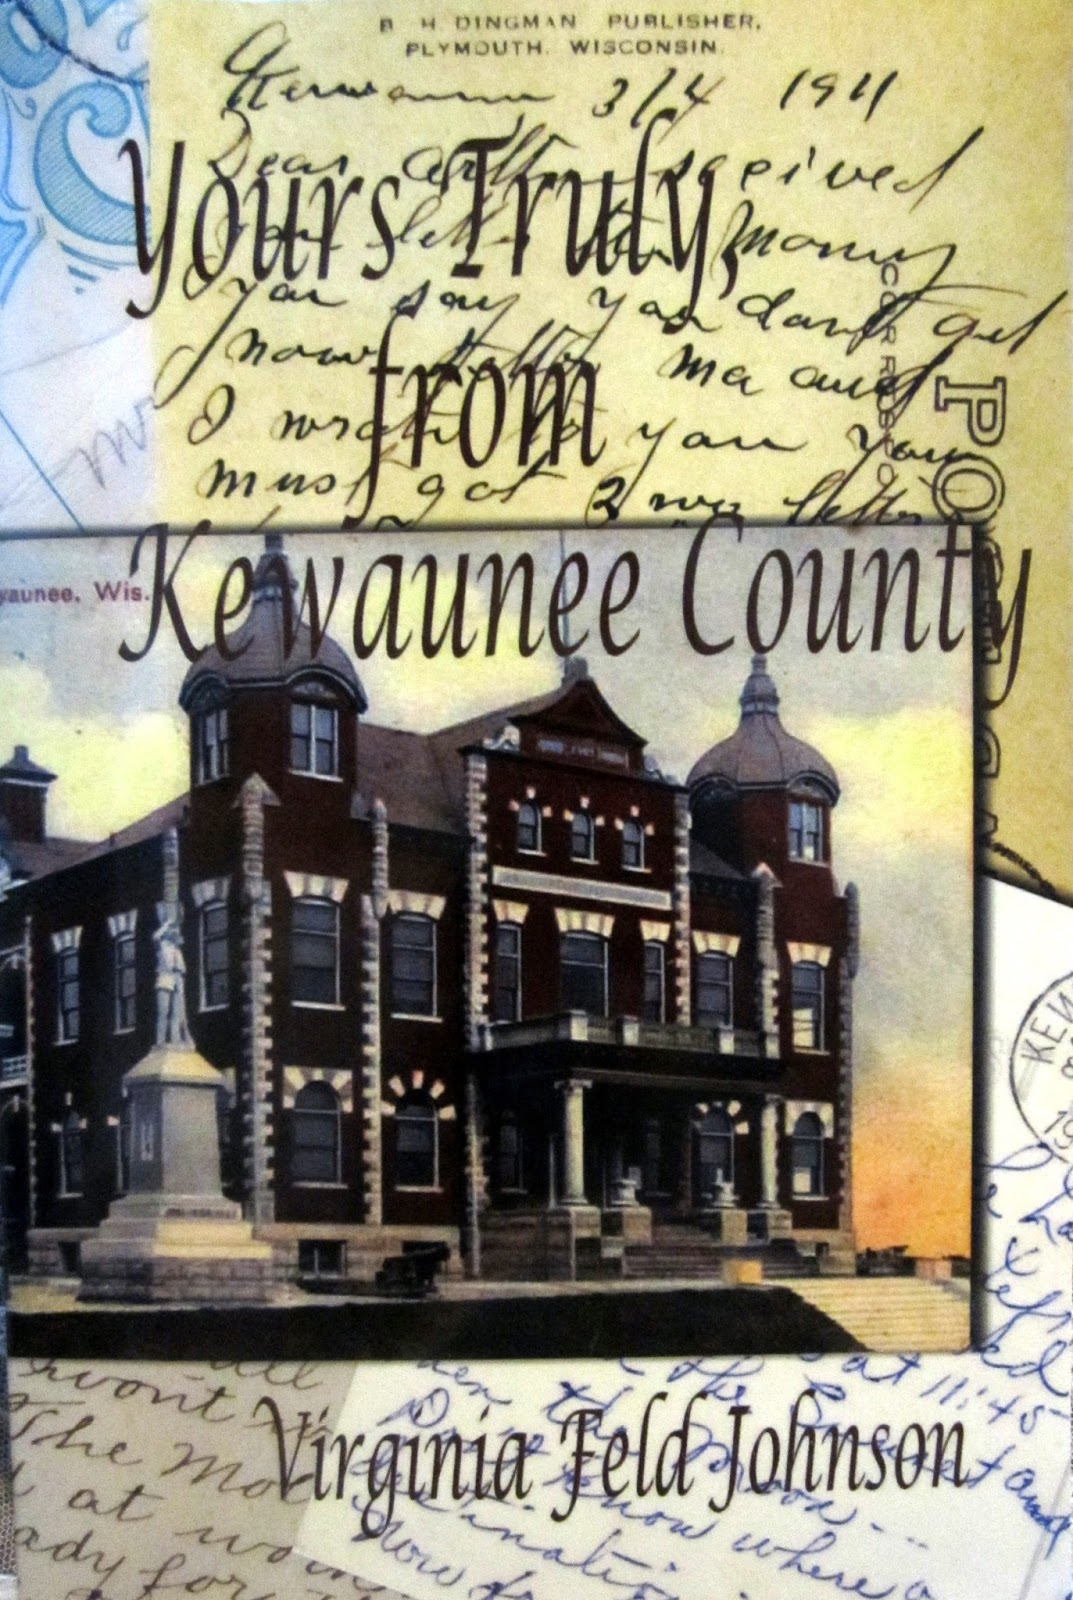 Kewaunee County History: August 2015